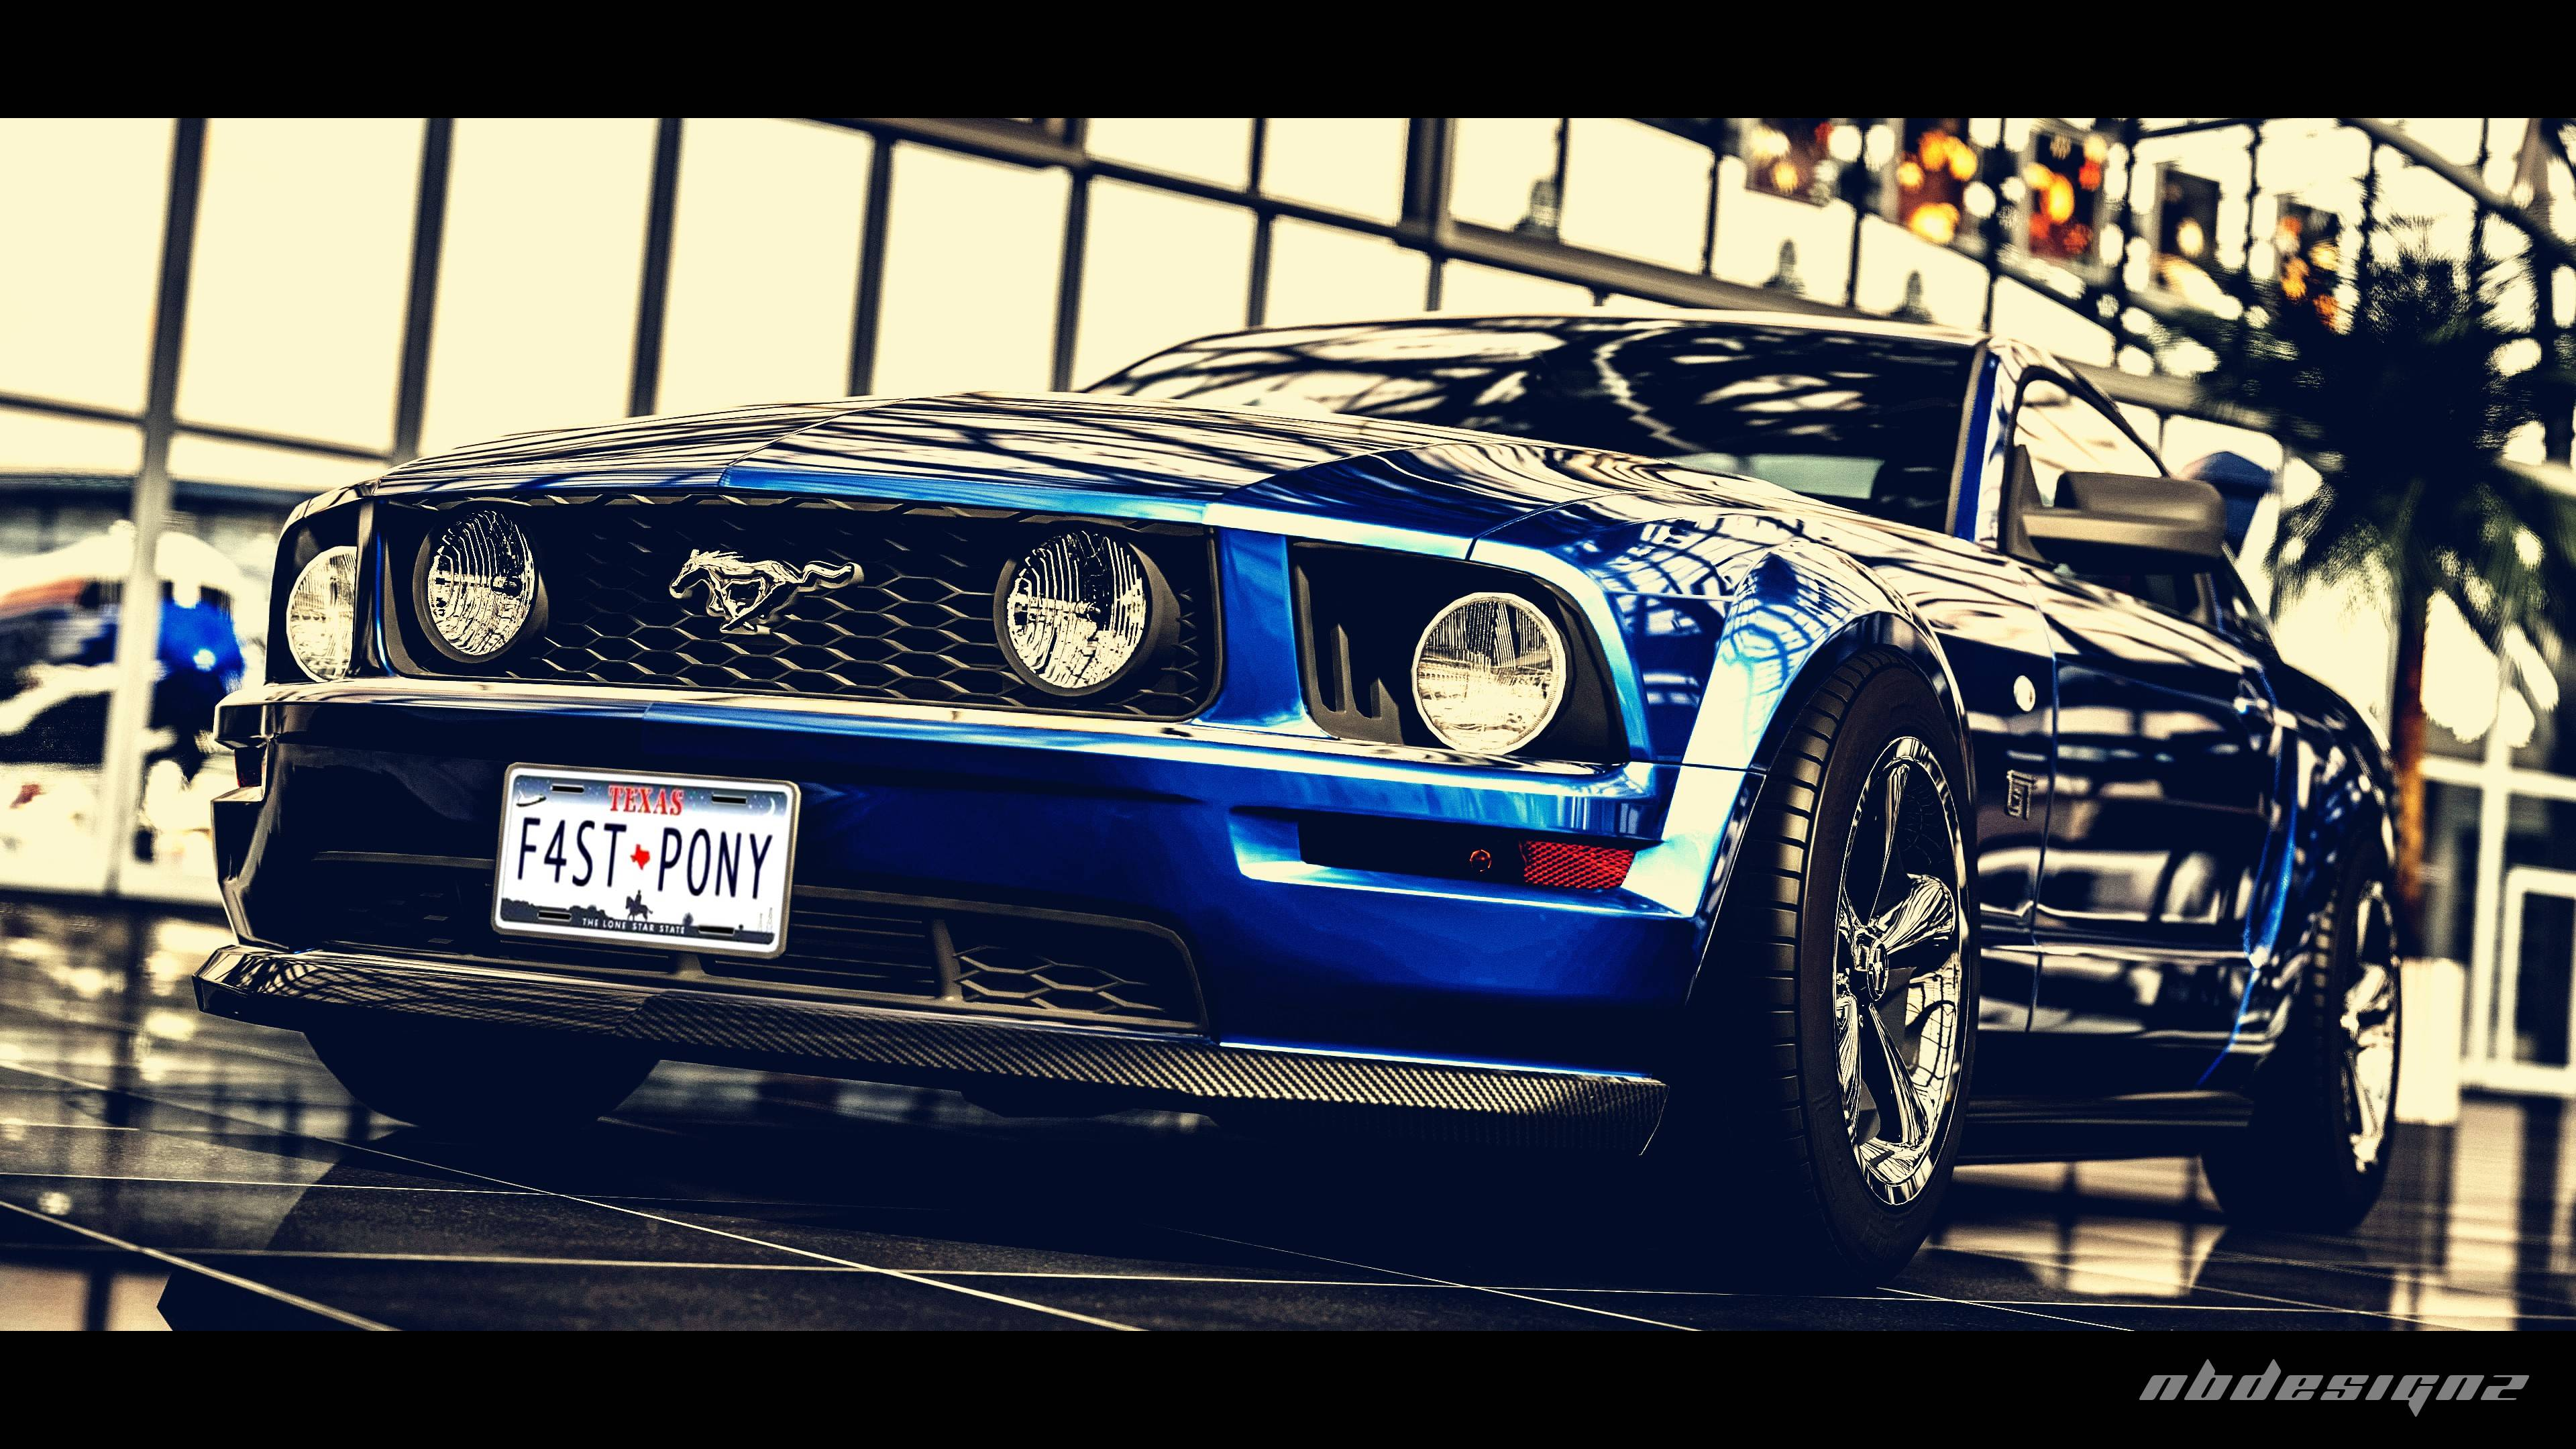 Ford Mustang wallpaper | Ford Mustang wallpaper - Part 9